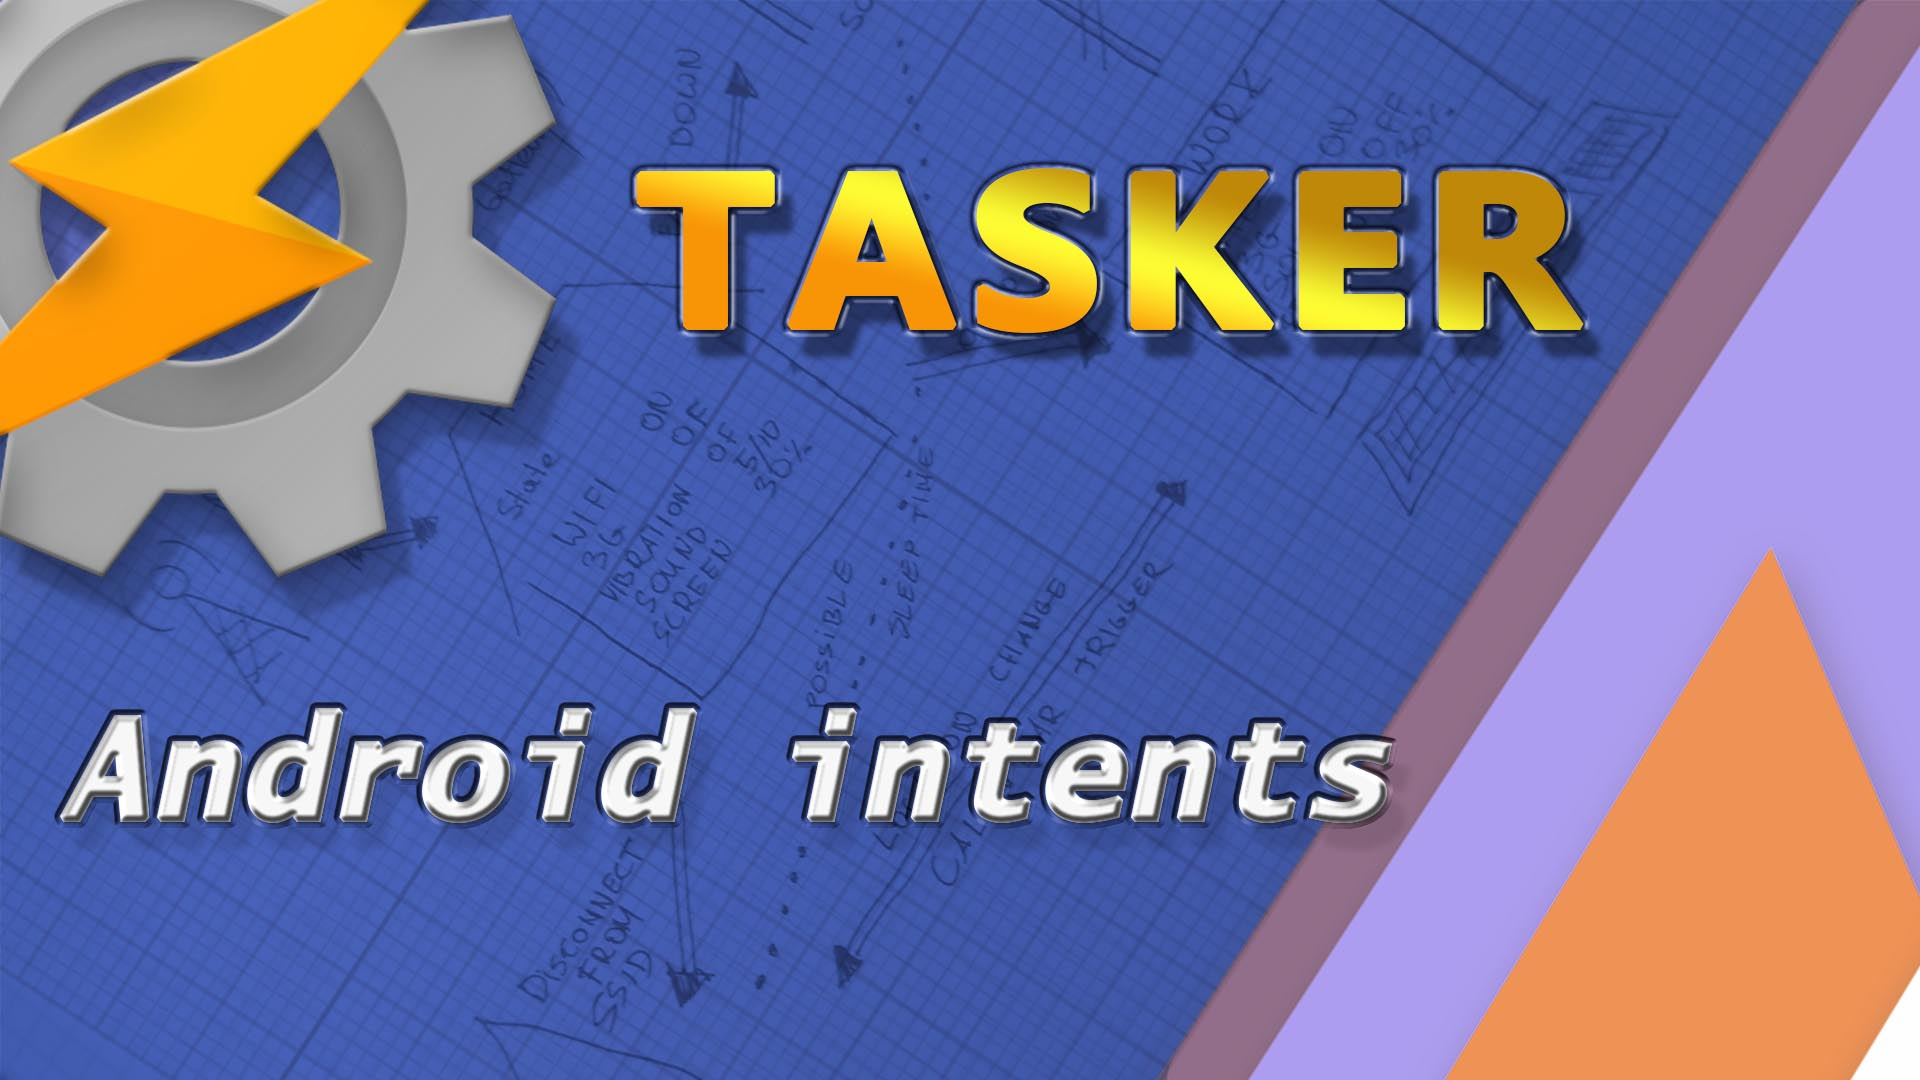 Android intents in Tasker